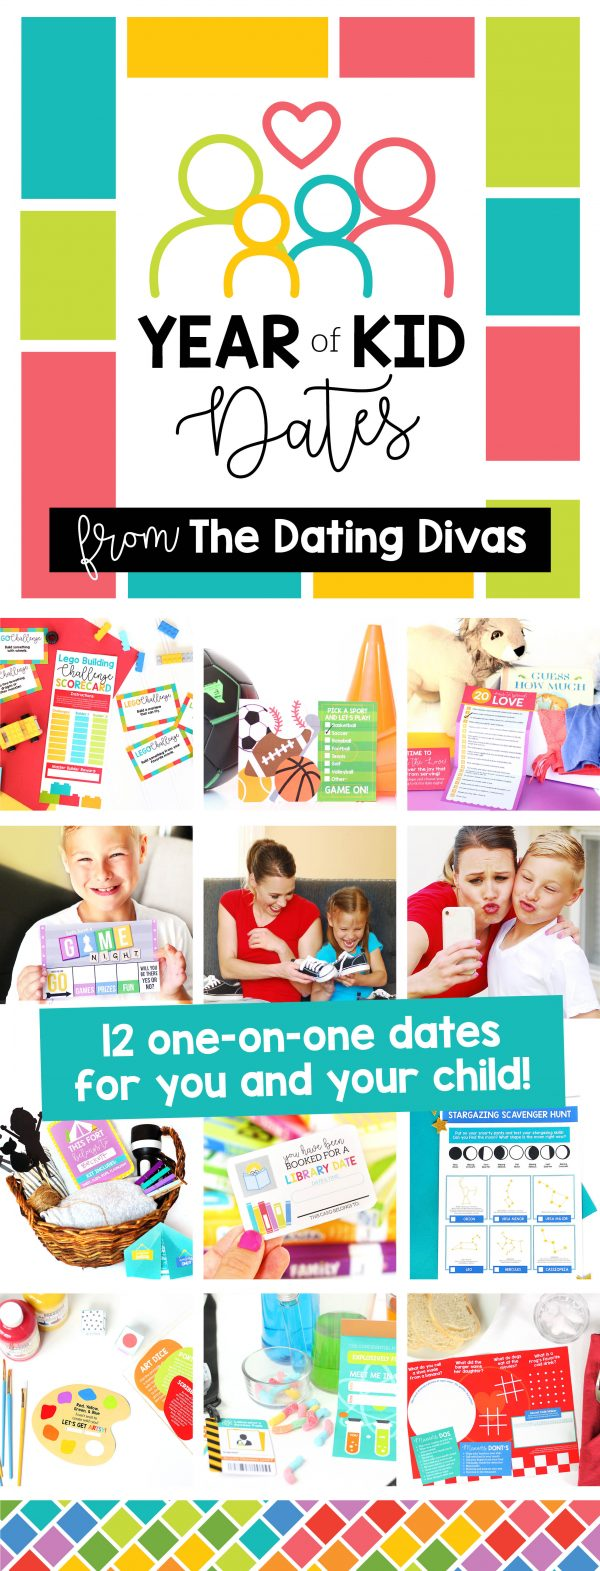 Year-of-Kid-Dates-for-Kids-Pinterest-2